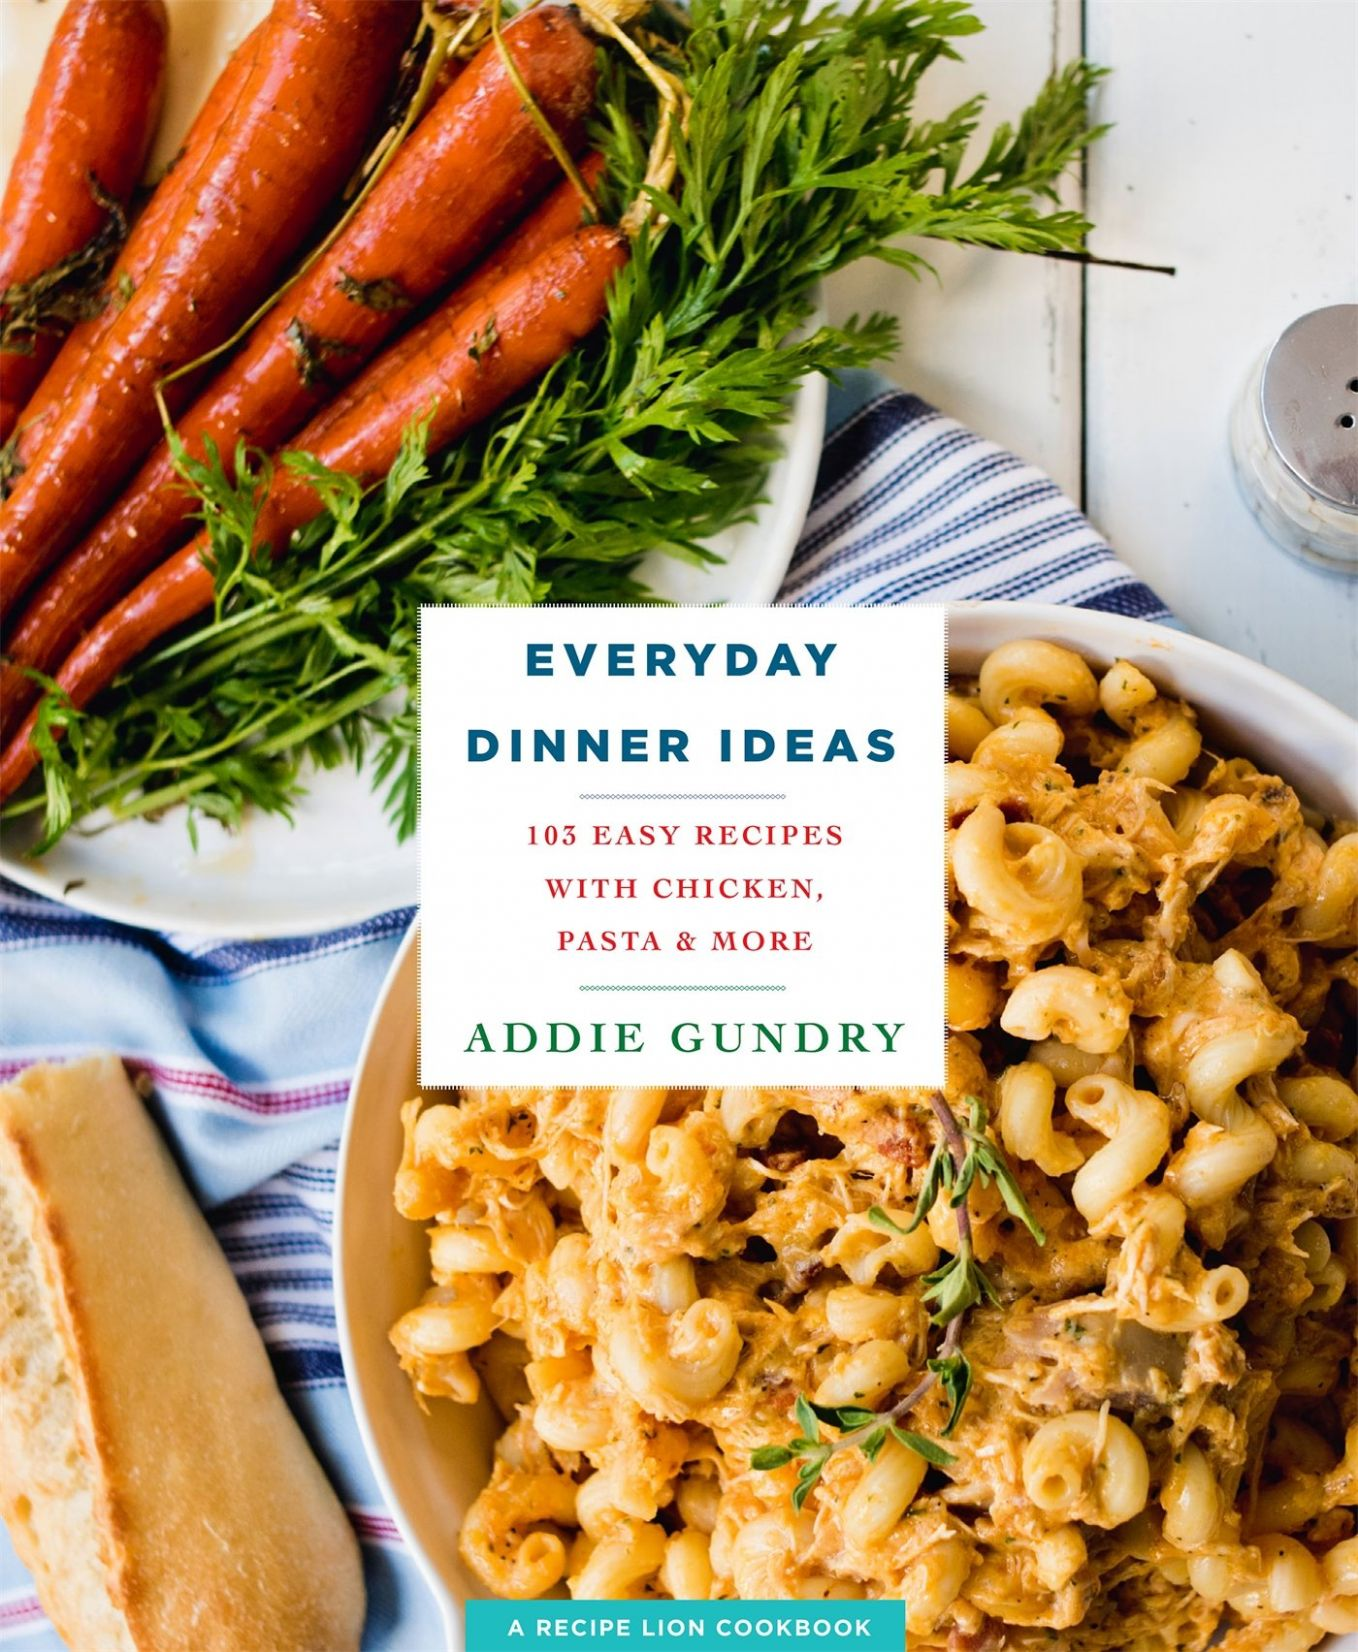 Everyday Dinner Ideas: 11 Easy Recipes for Chicken, Pasta, and ..